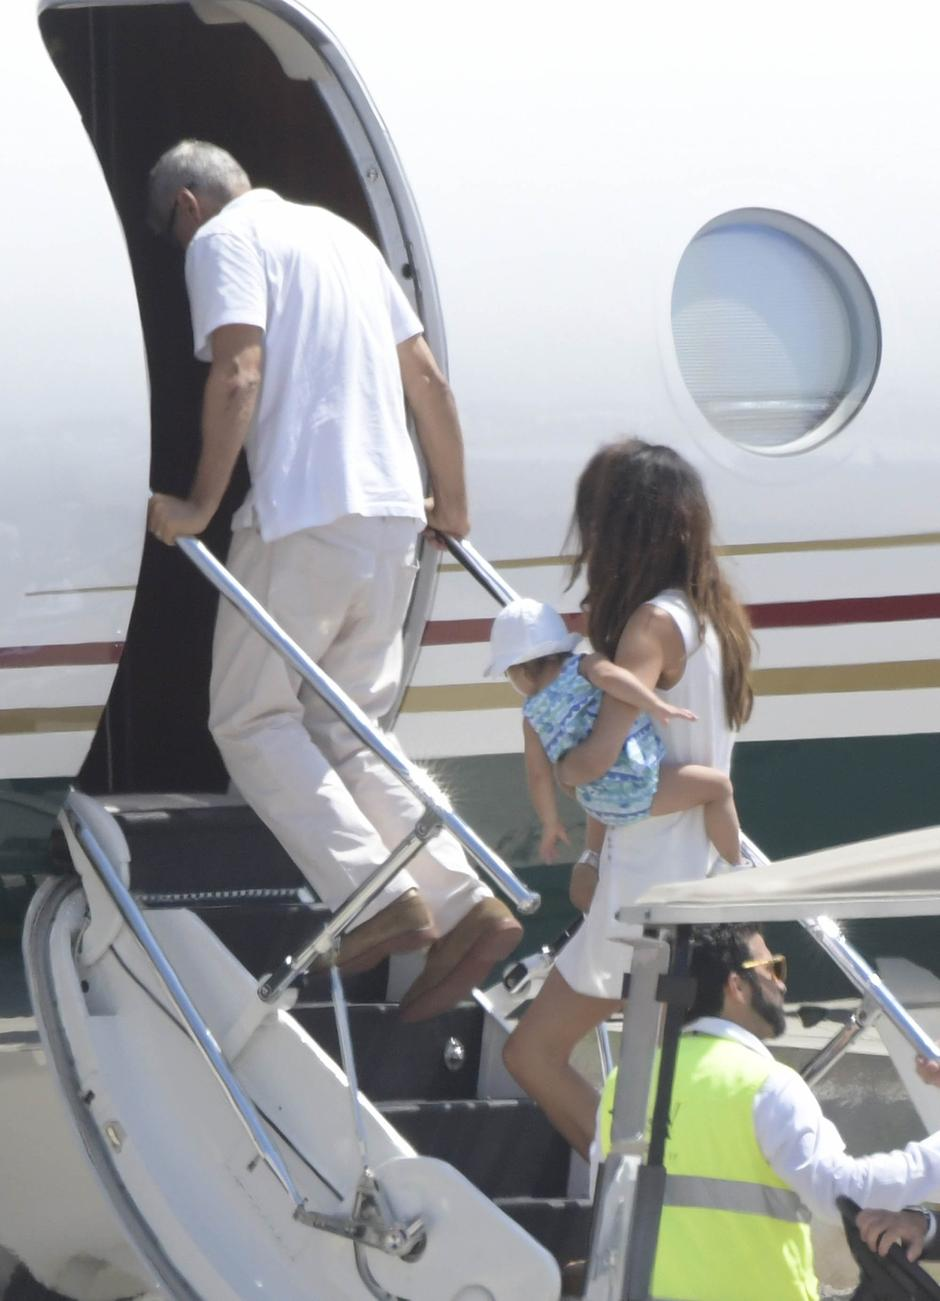 George Clooney departing from Olbia with wife Amal and the twins | Autor: Profimedia